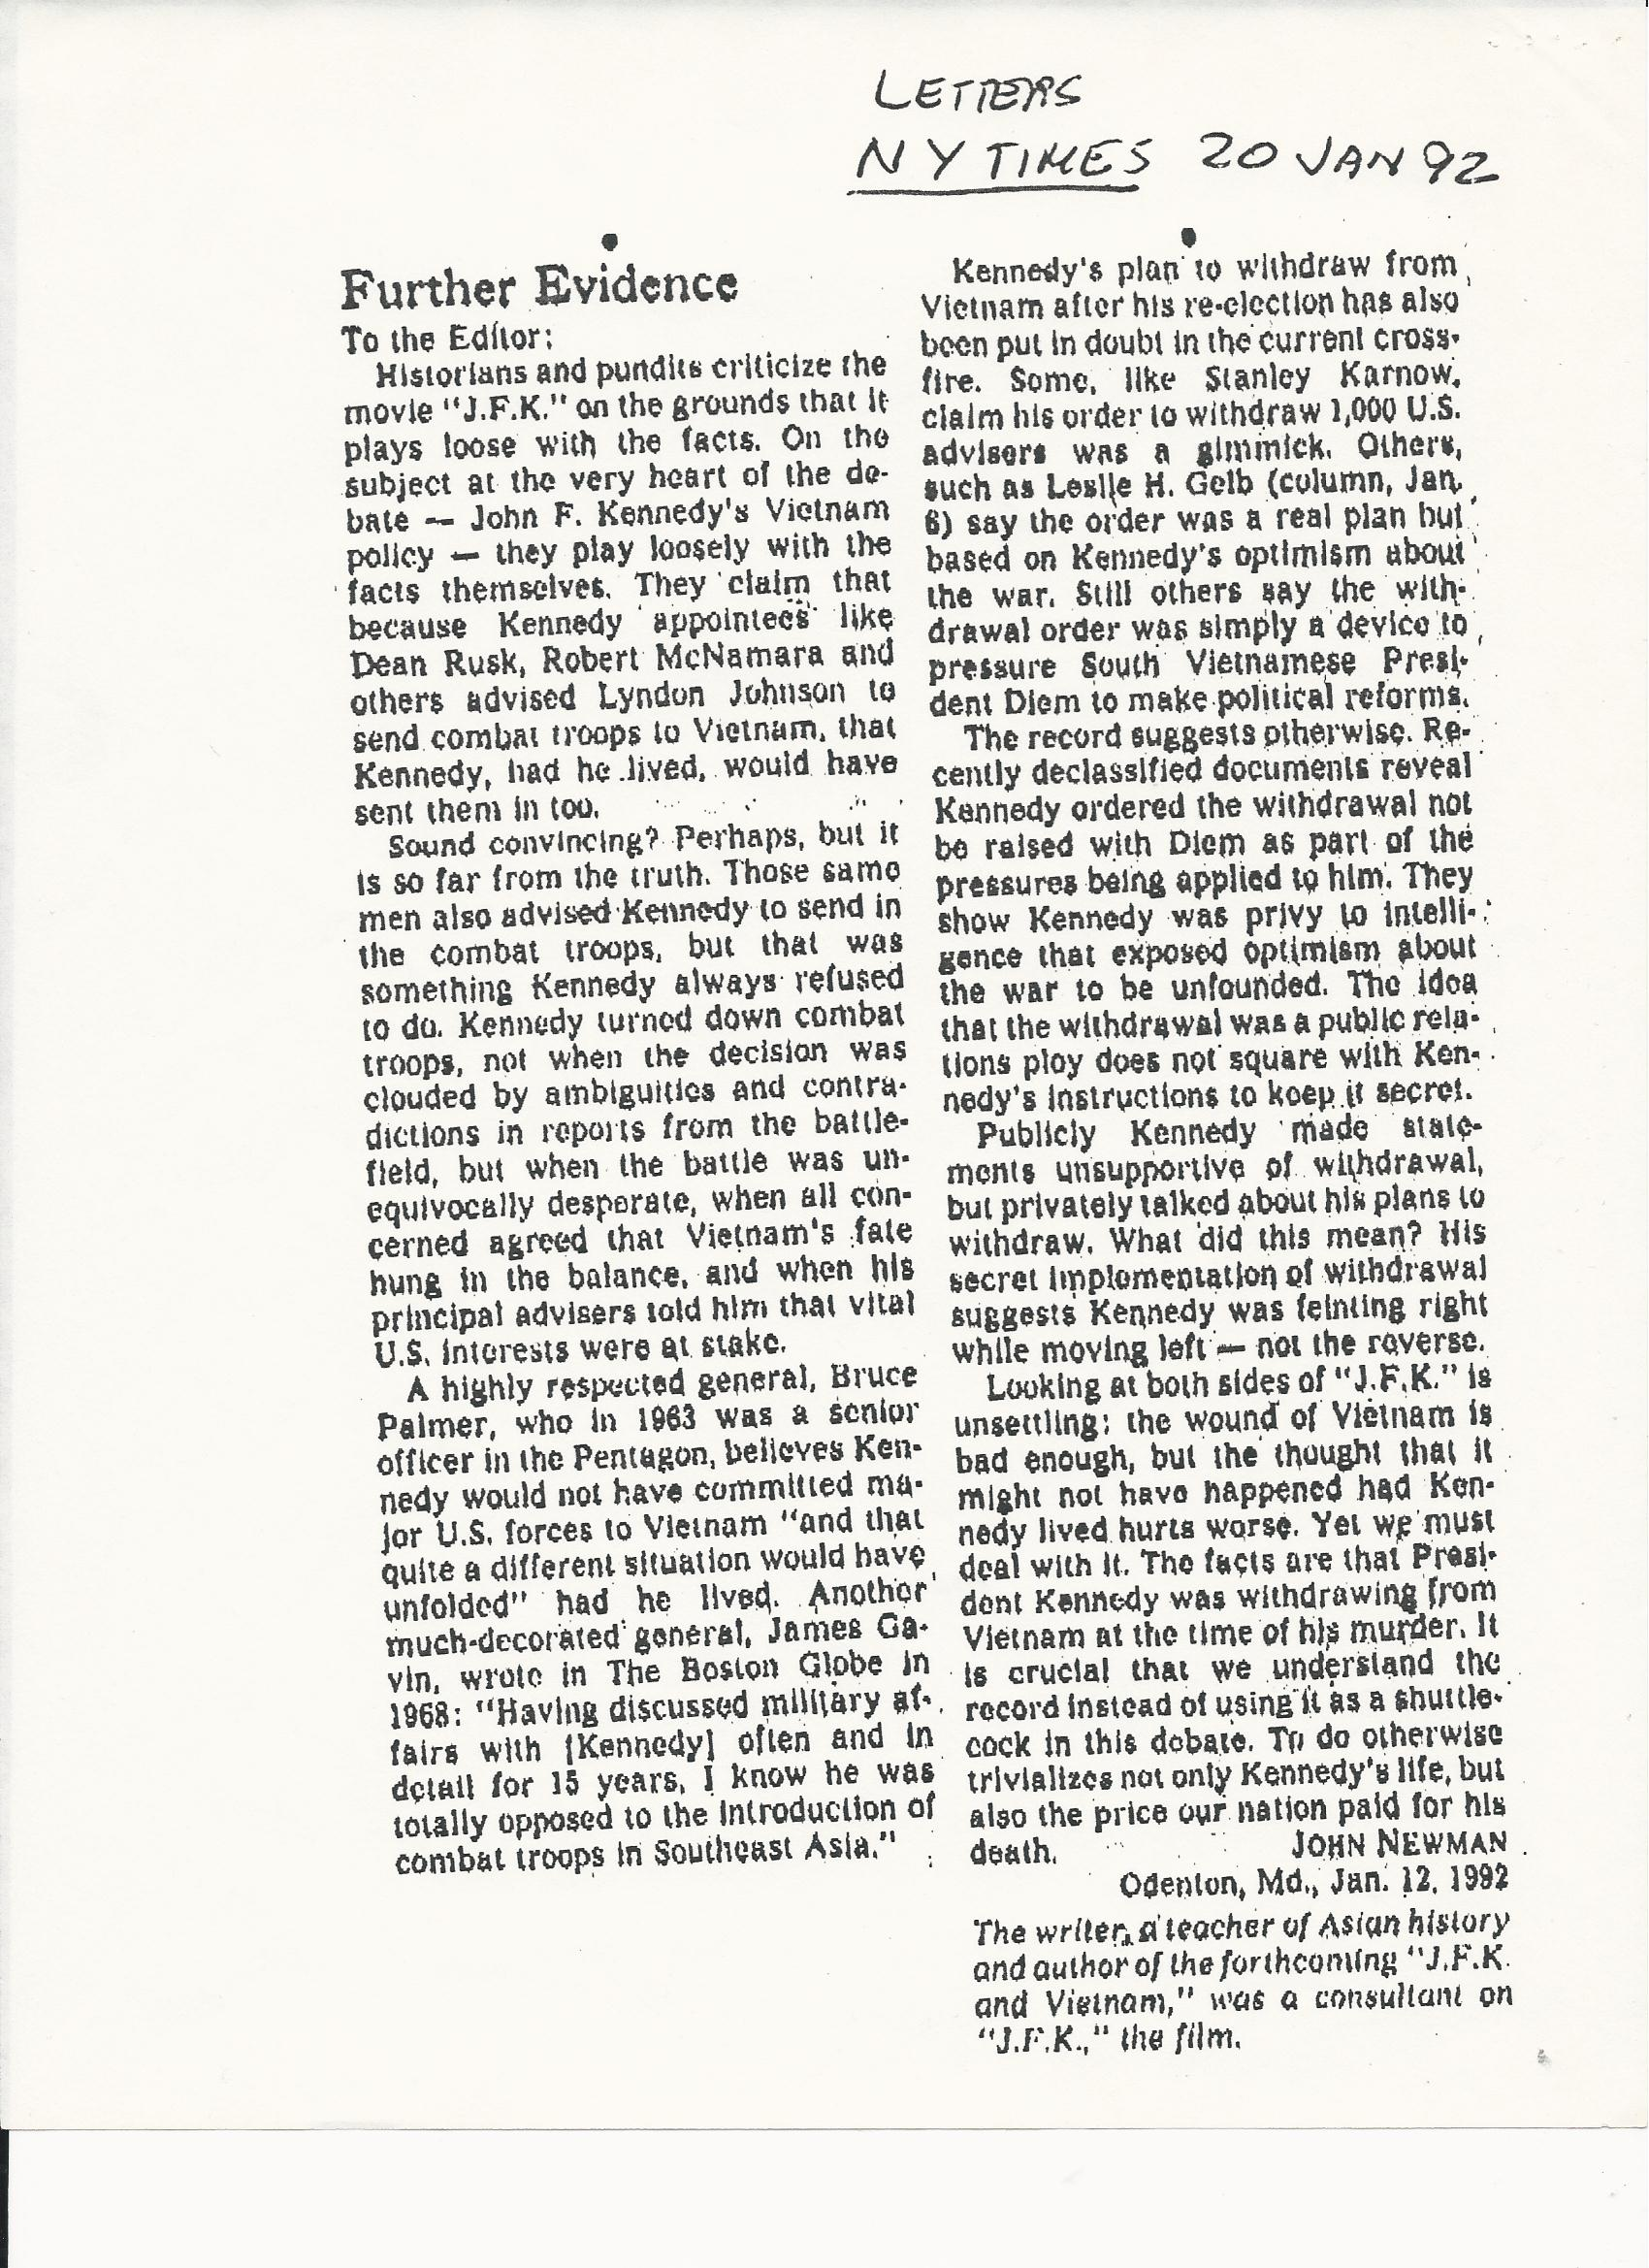 12092NYTJOHNNEWMAN 1/20/92 NYT Hilsman and Newman